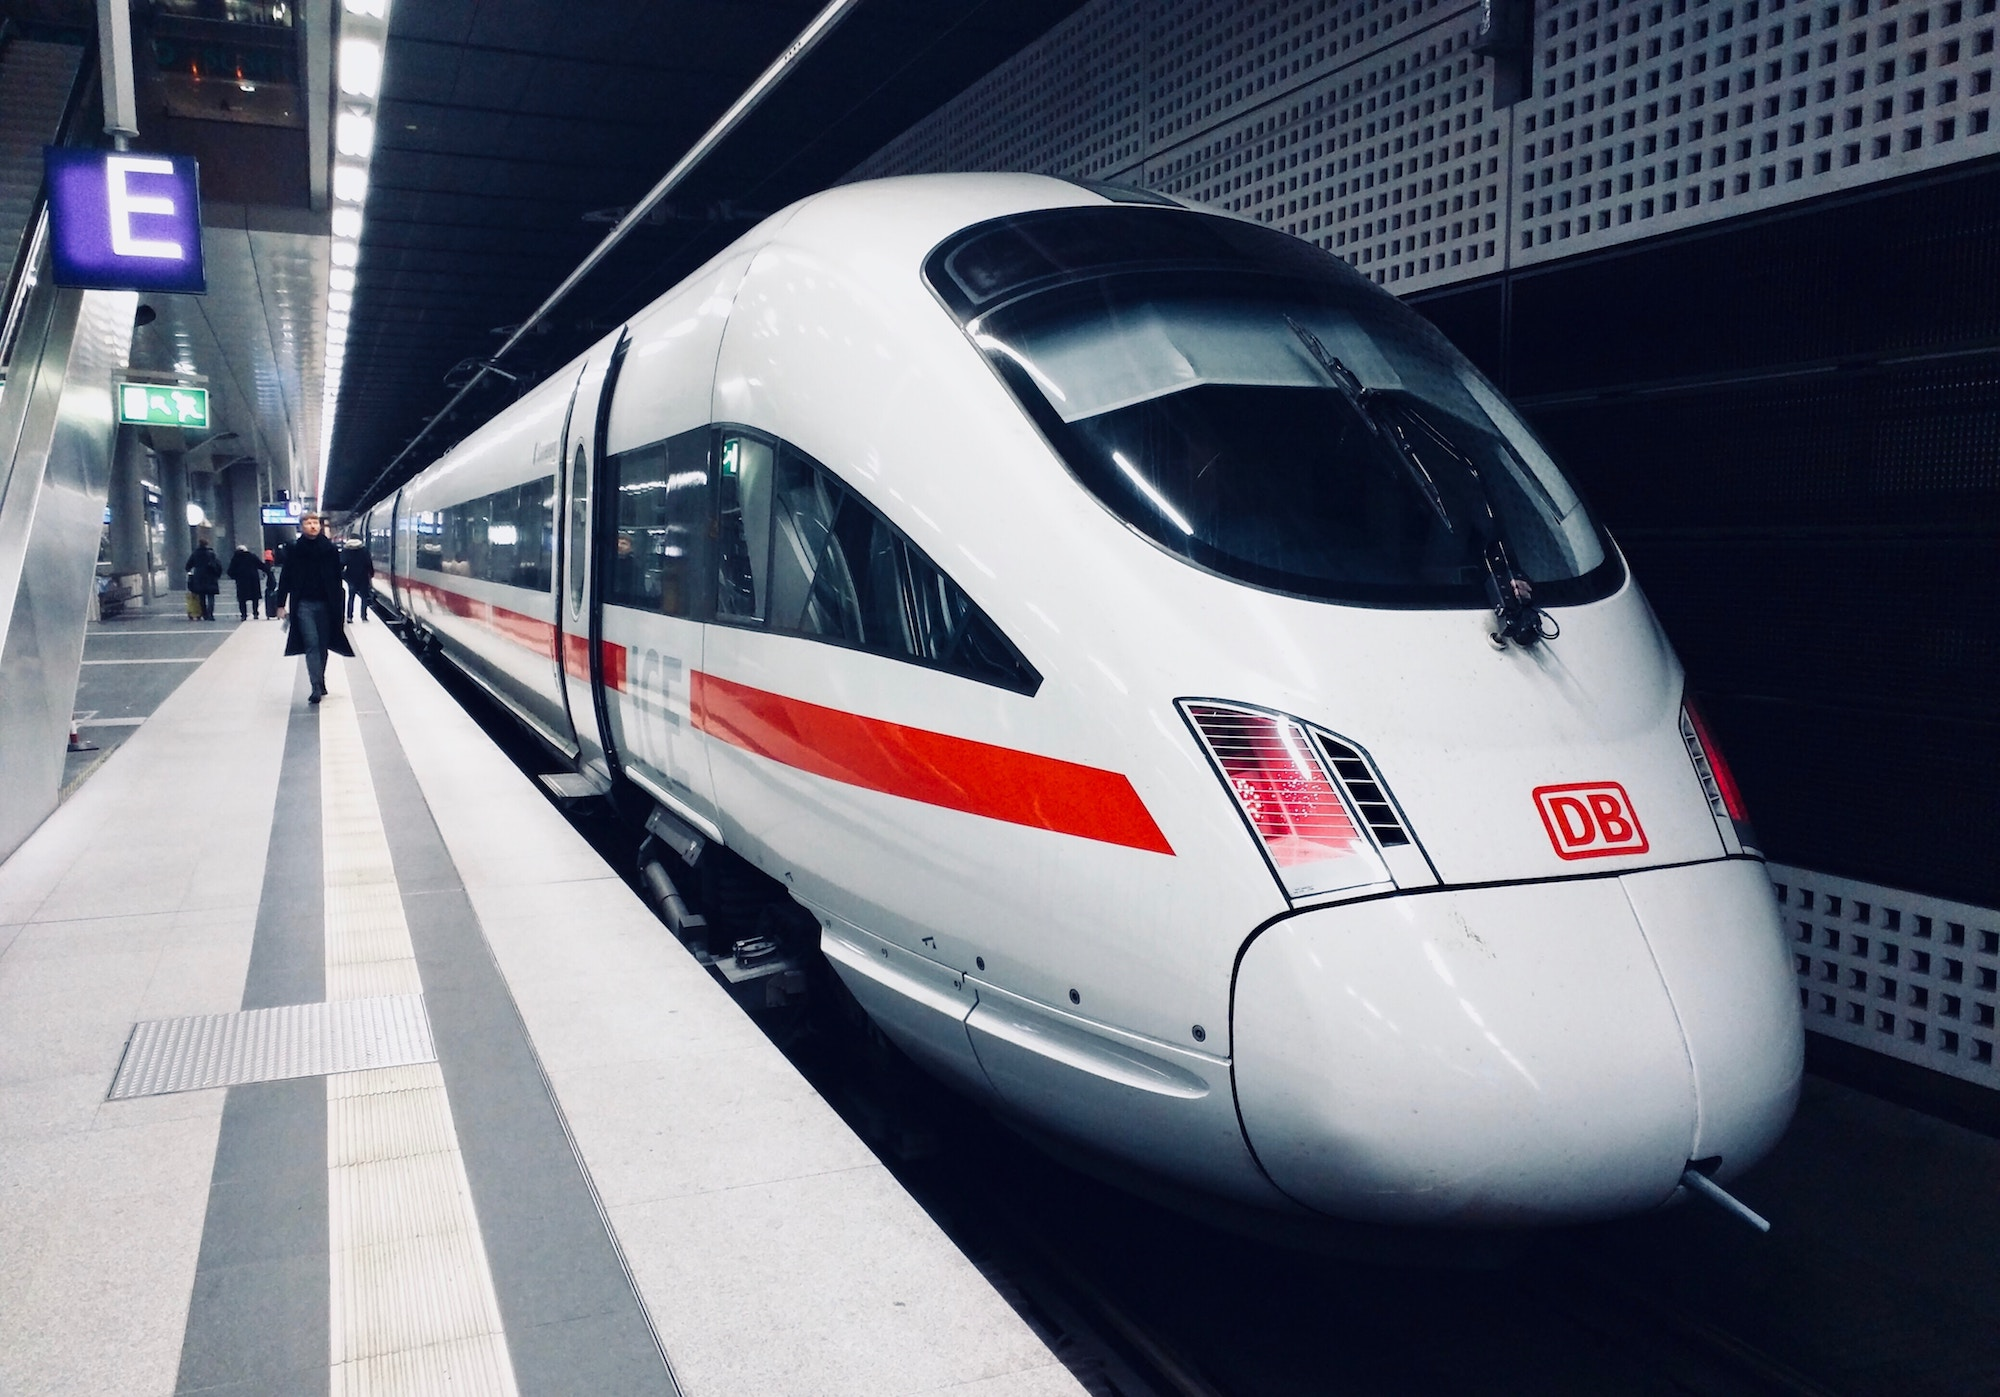 Should You Buy The German Rail Pass to Get Around When Visiting Germany?